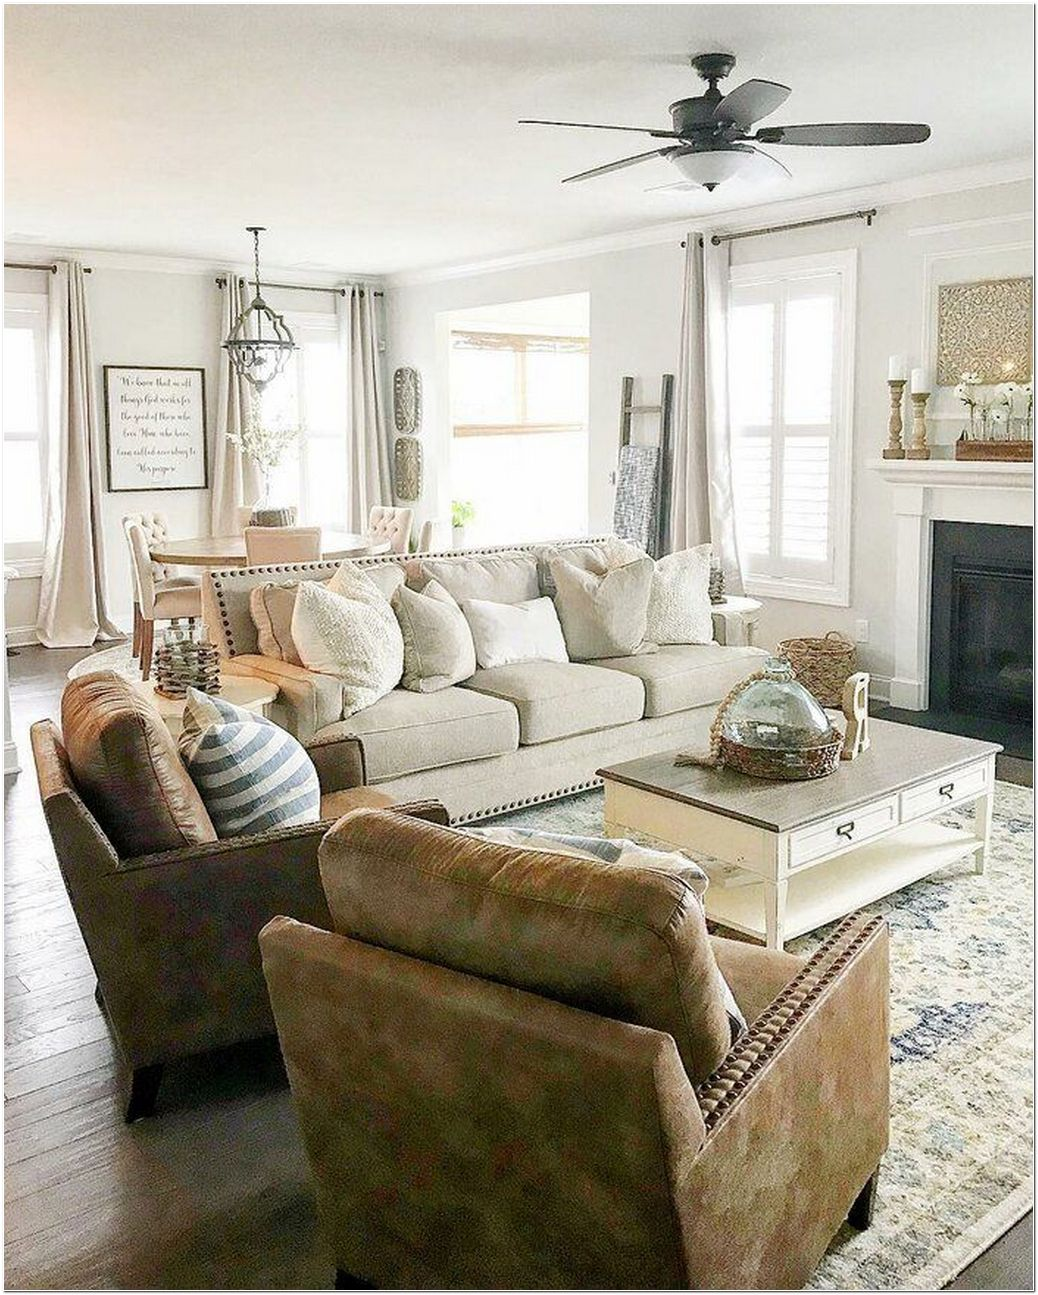 94 Key Features of Luxury Living Room Interior